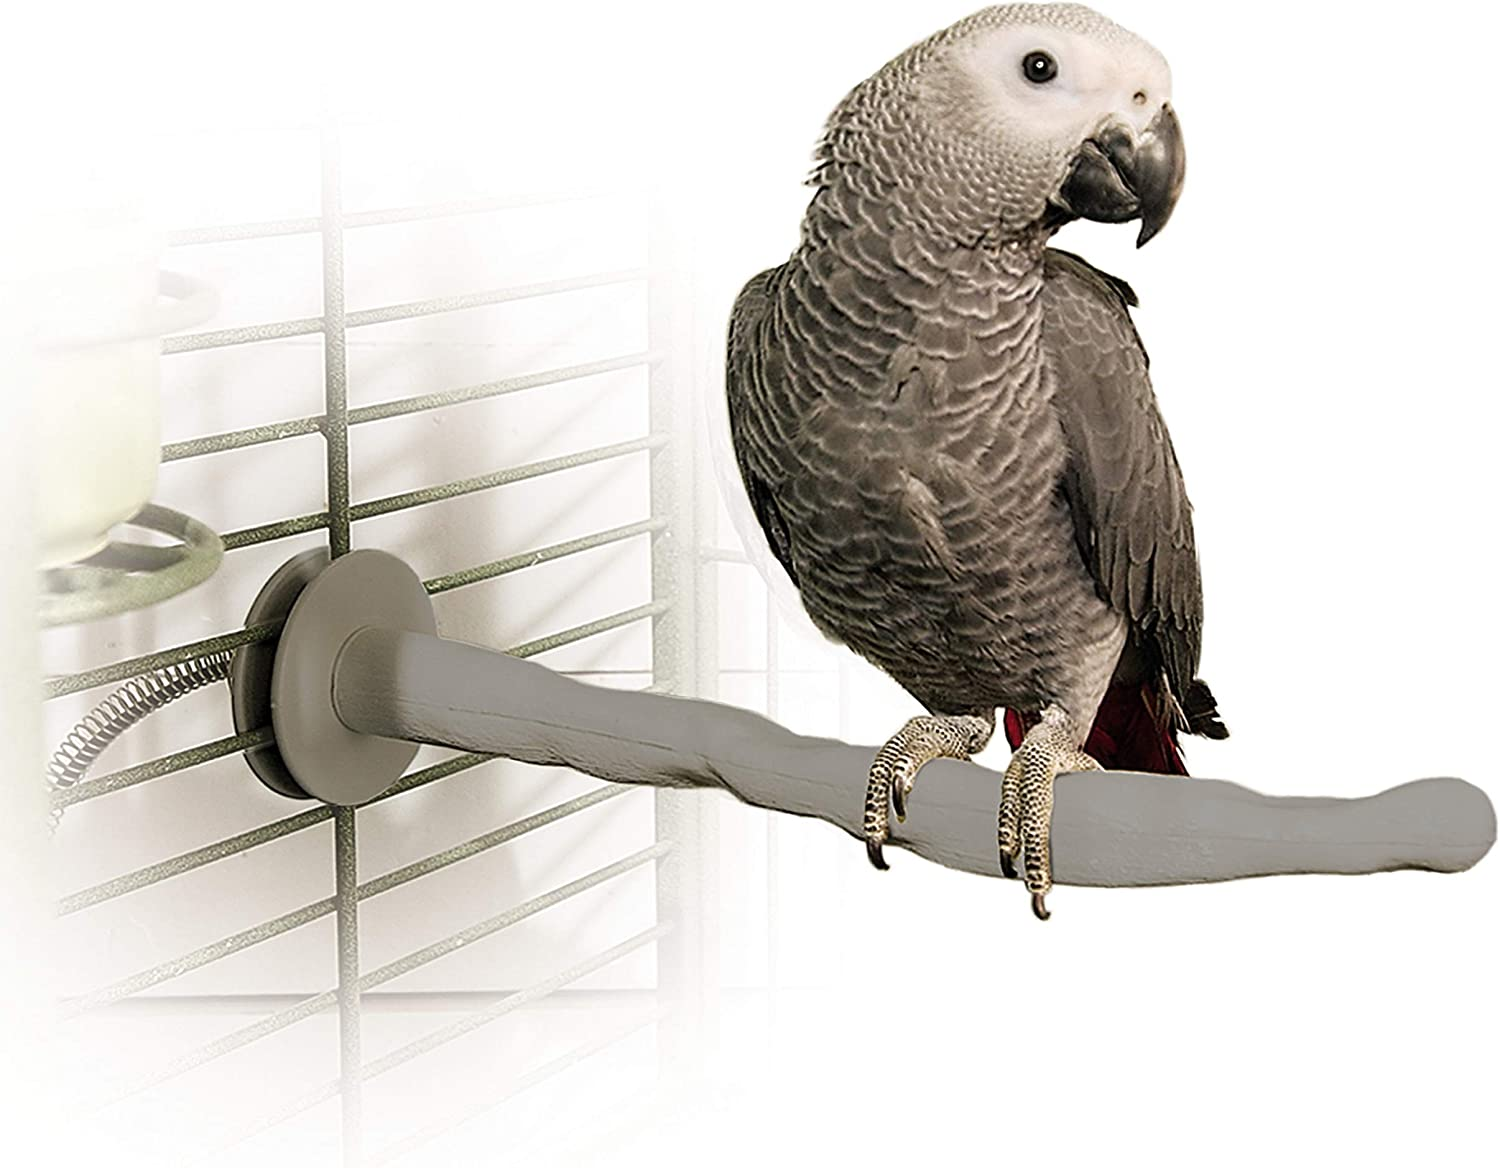 K&H Pet Products Thermo-Perch Heated Bird Perch